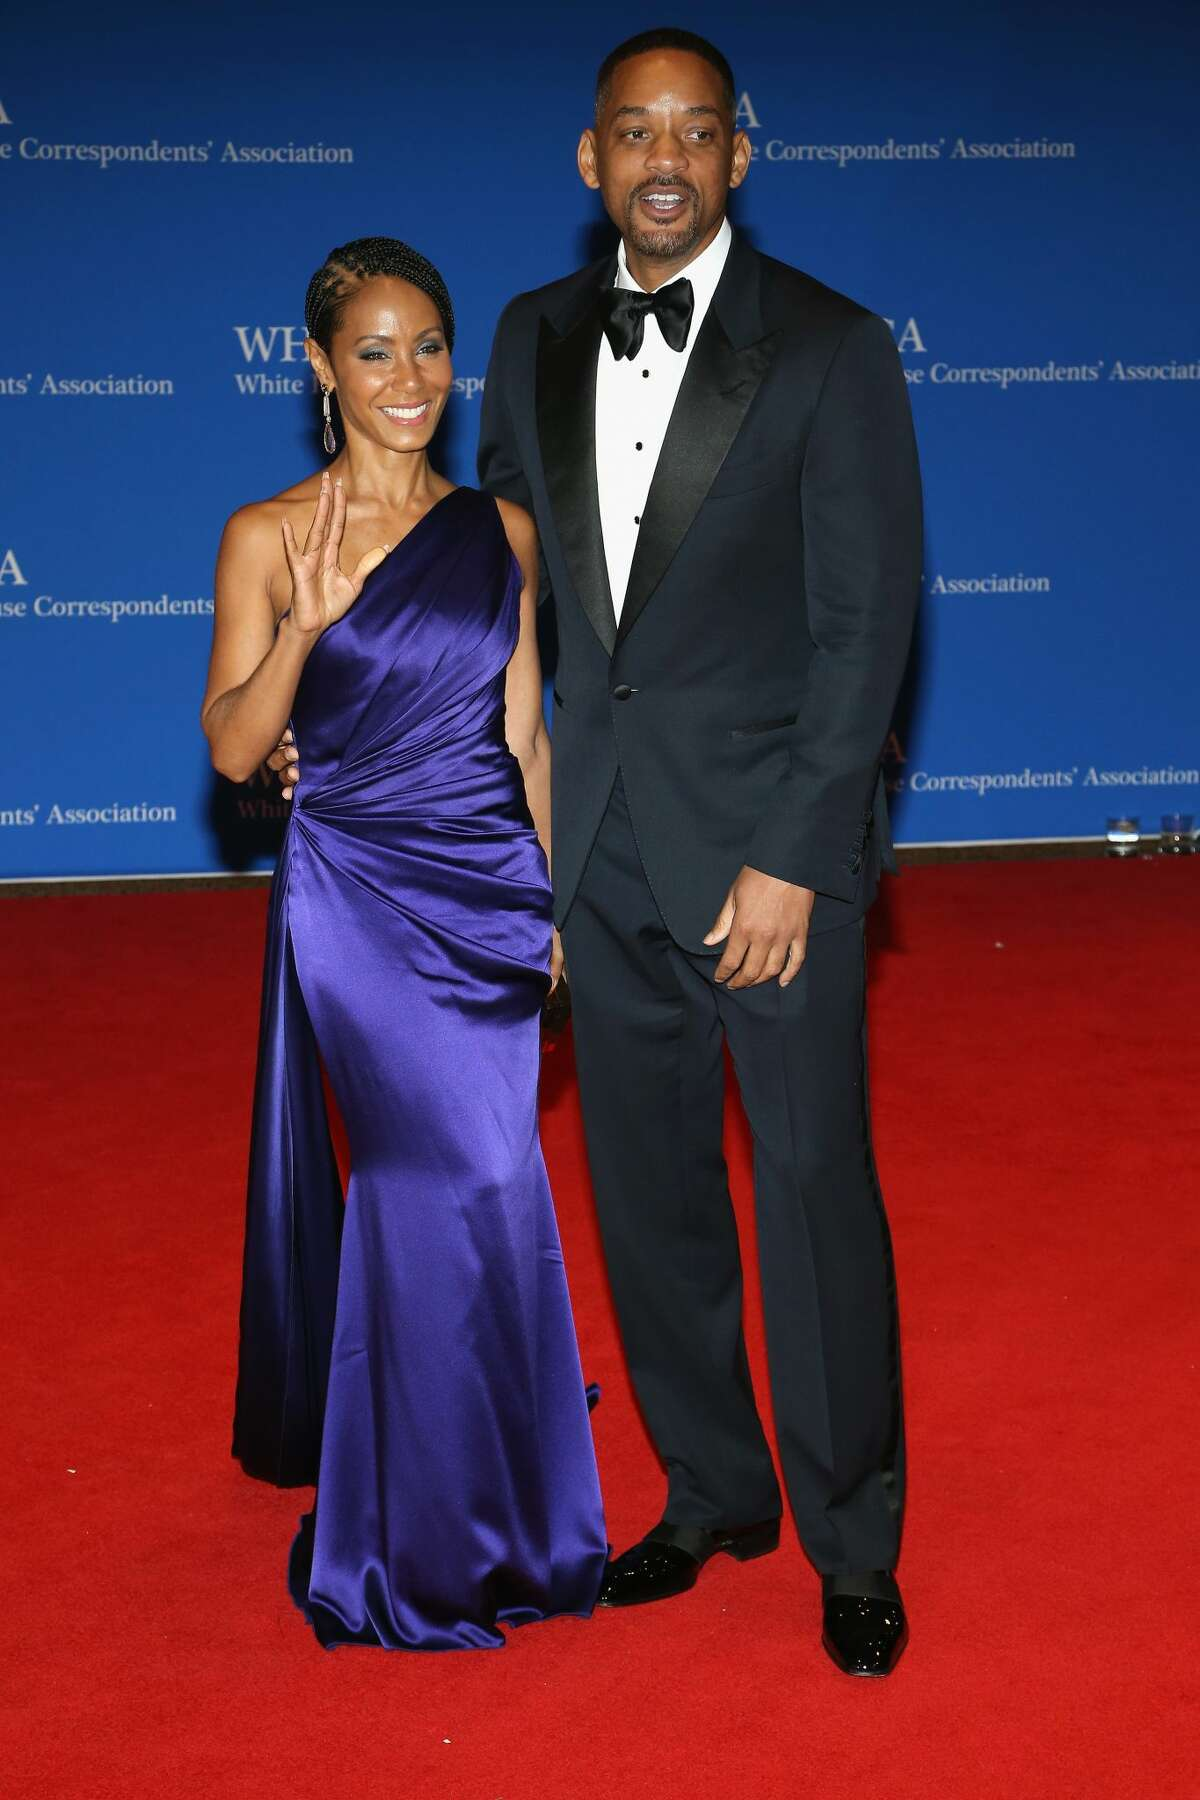 Actors Jada Pinkett Smith (L) and Will Smith attends the 102nd White House Correspondents' Association Dinner on April 30, 2016 in Washington, DC.